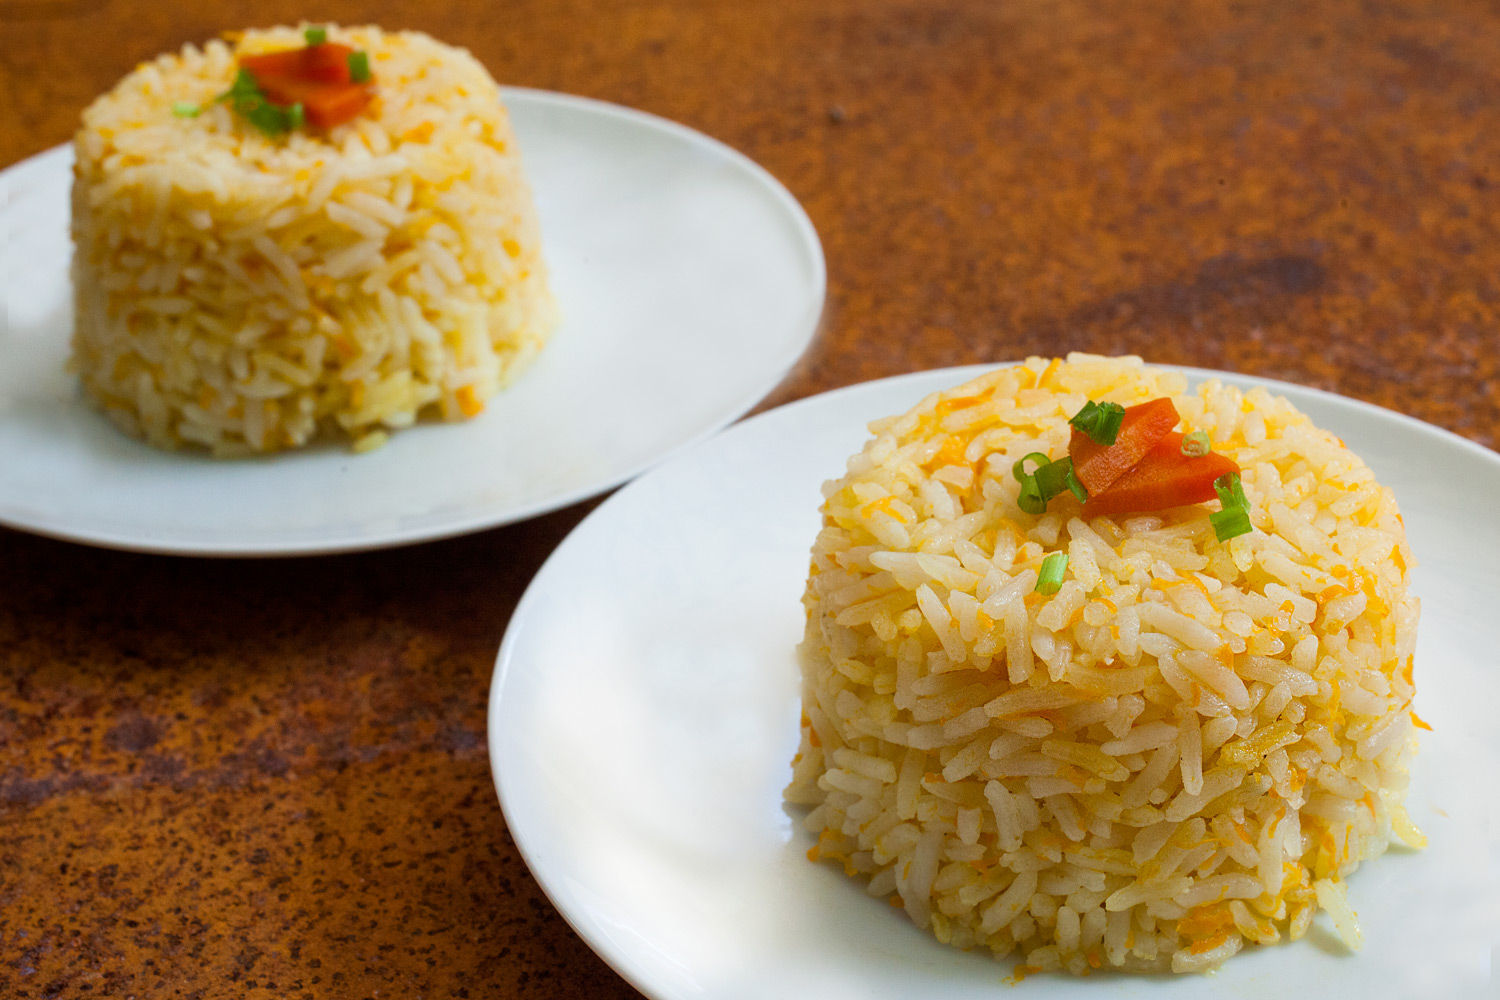 Carrot and Onion White Rice